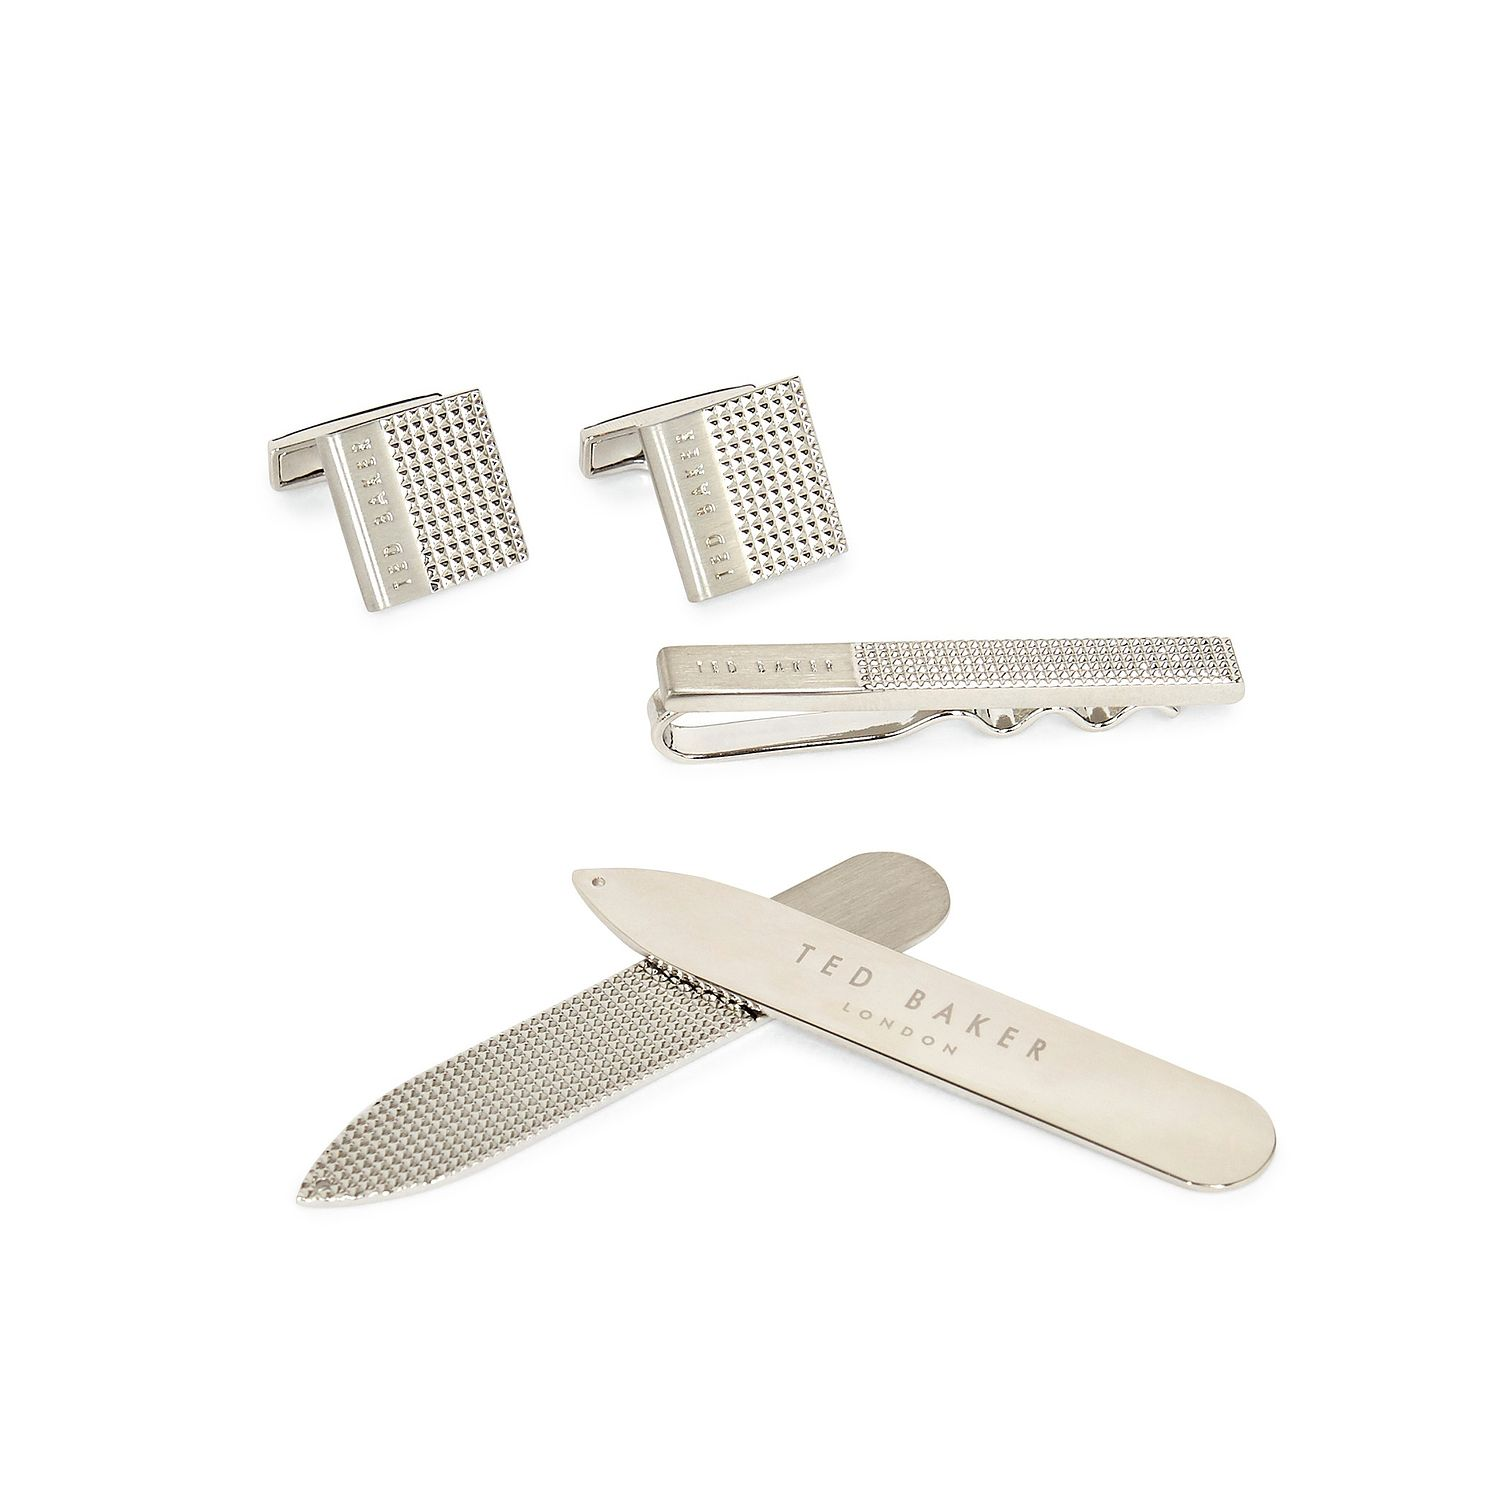 Ted Baker Blinder Cufflinks, Tie Bar & Collar Stiffener Set - Product number 5129532